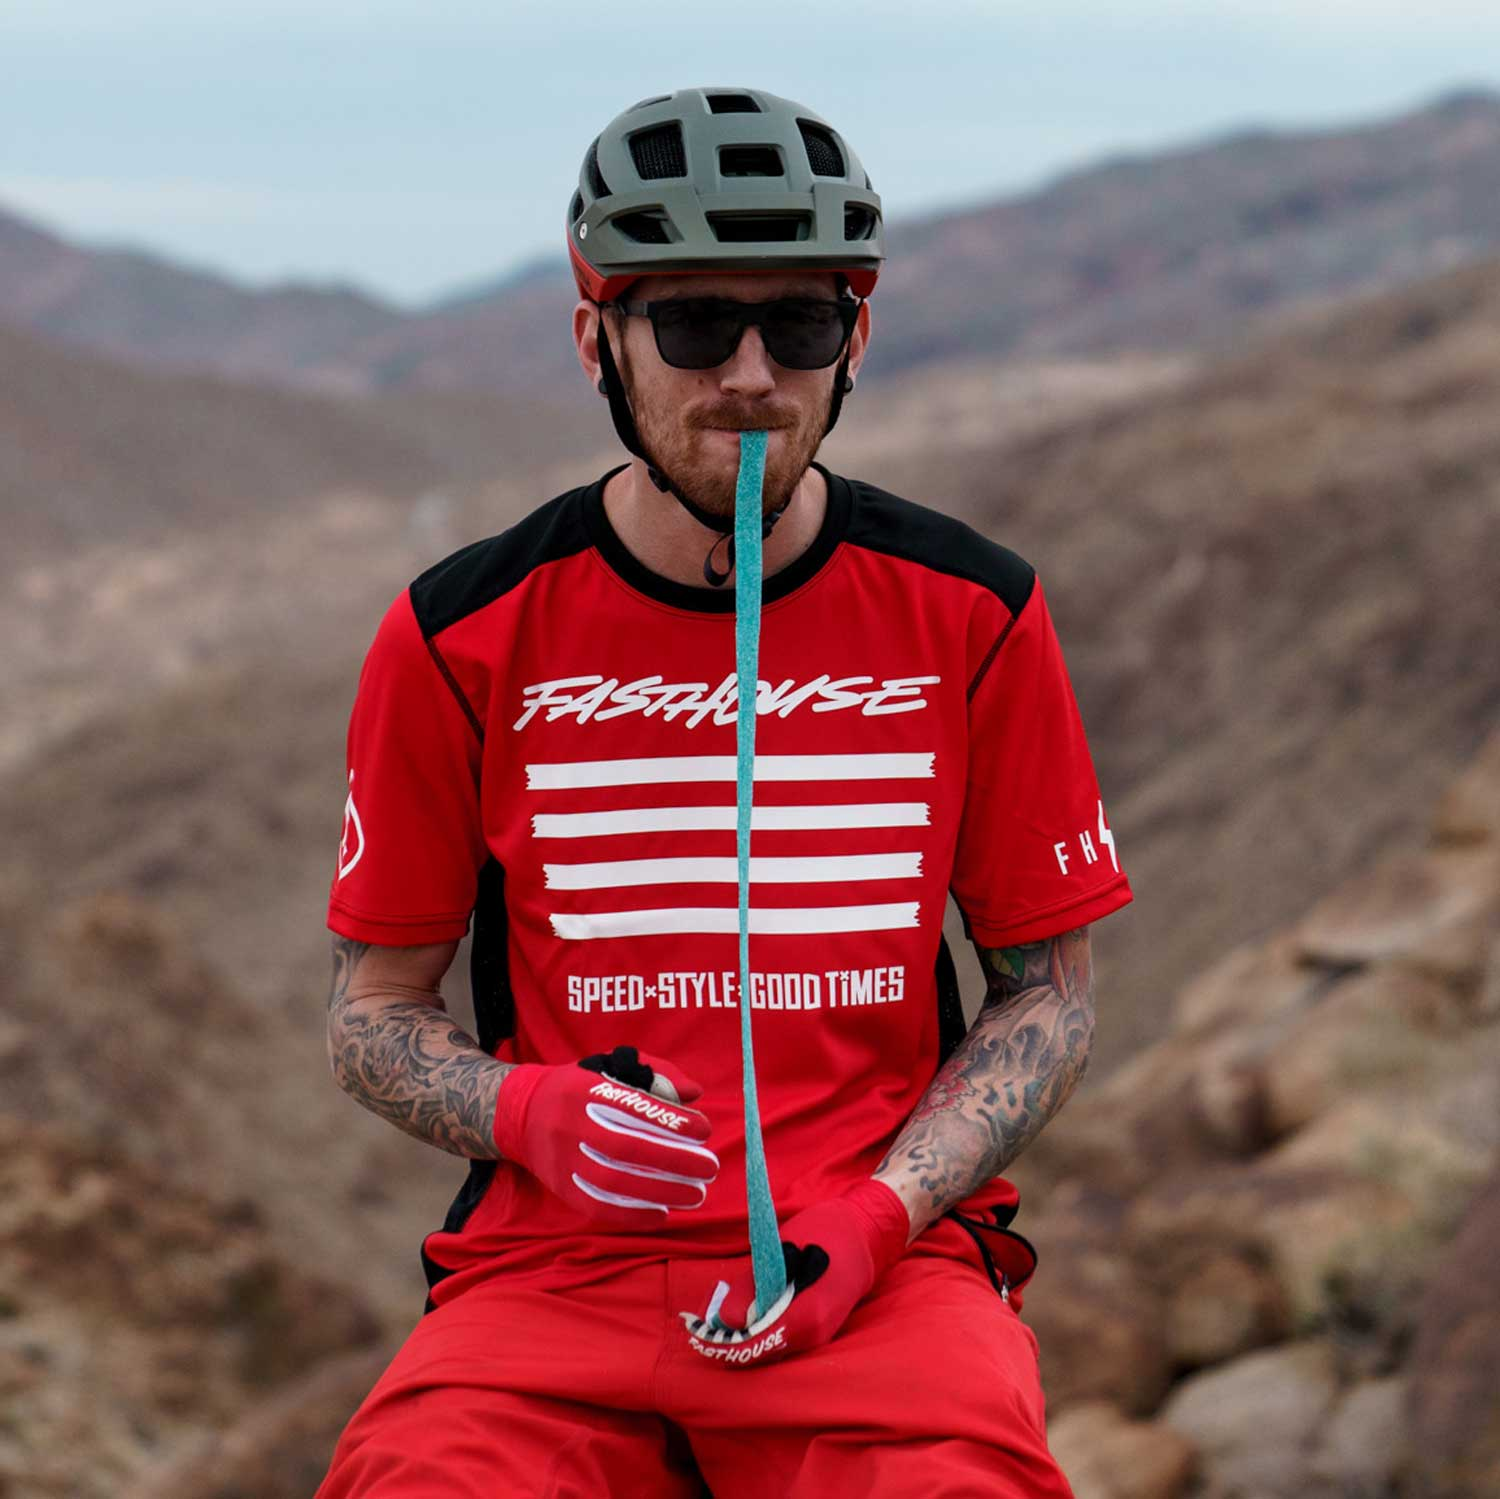 2020 eMTB Roundup: The Crew - Sourpatch